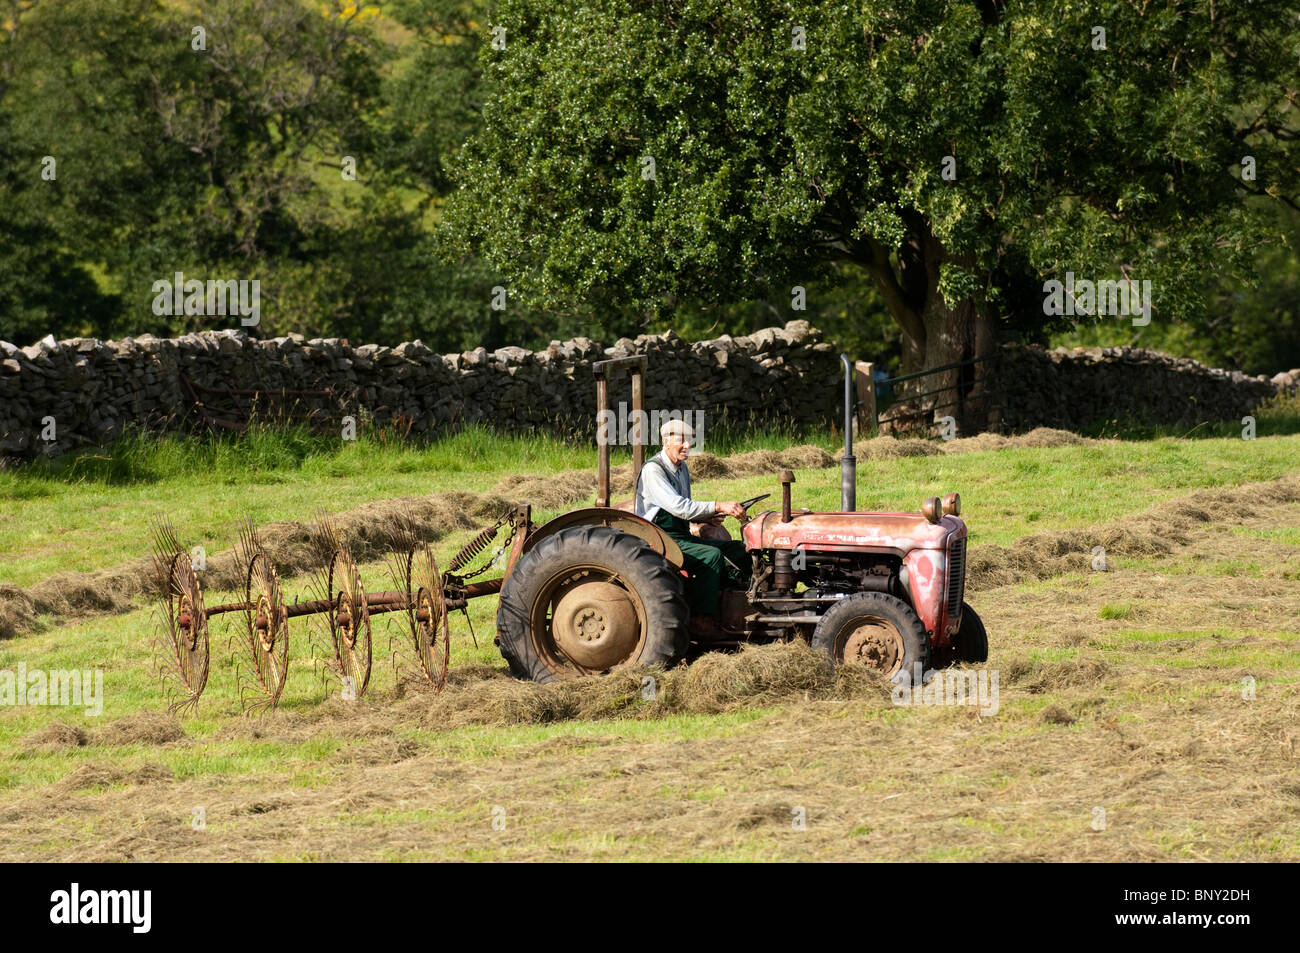 Farmer rowing up hay with an old Fergie tractor and acrobat. - Stock Image